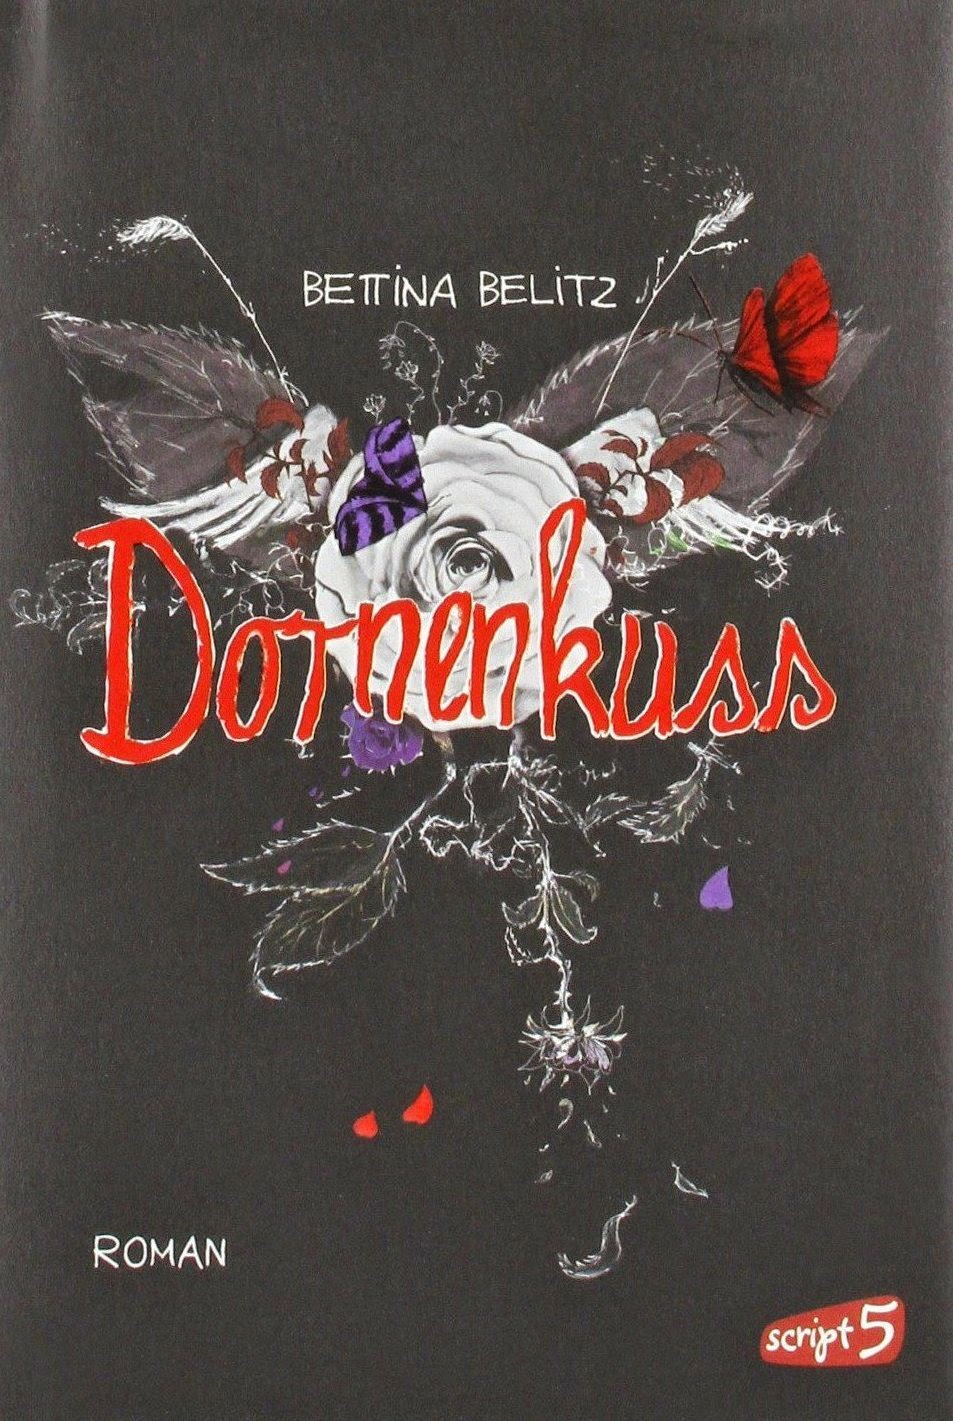 https://www.buchhaus-sternverlag.de/shop/action/productDetails/14932035/bettina_belitz_dornenkuss_3839001234.html?aUrl=90007403&searchId=52